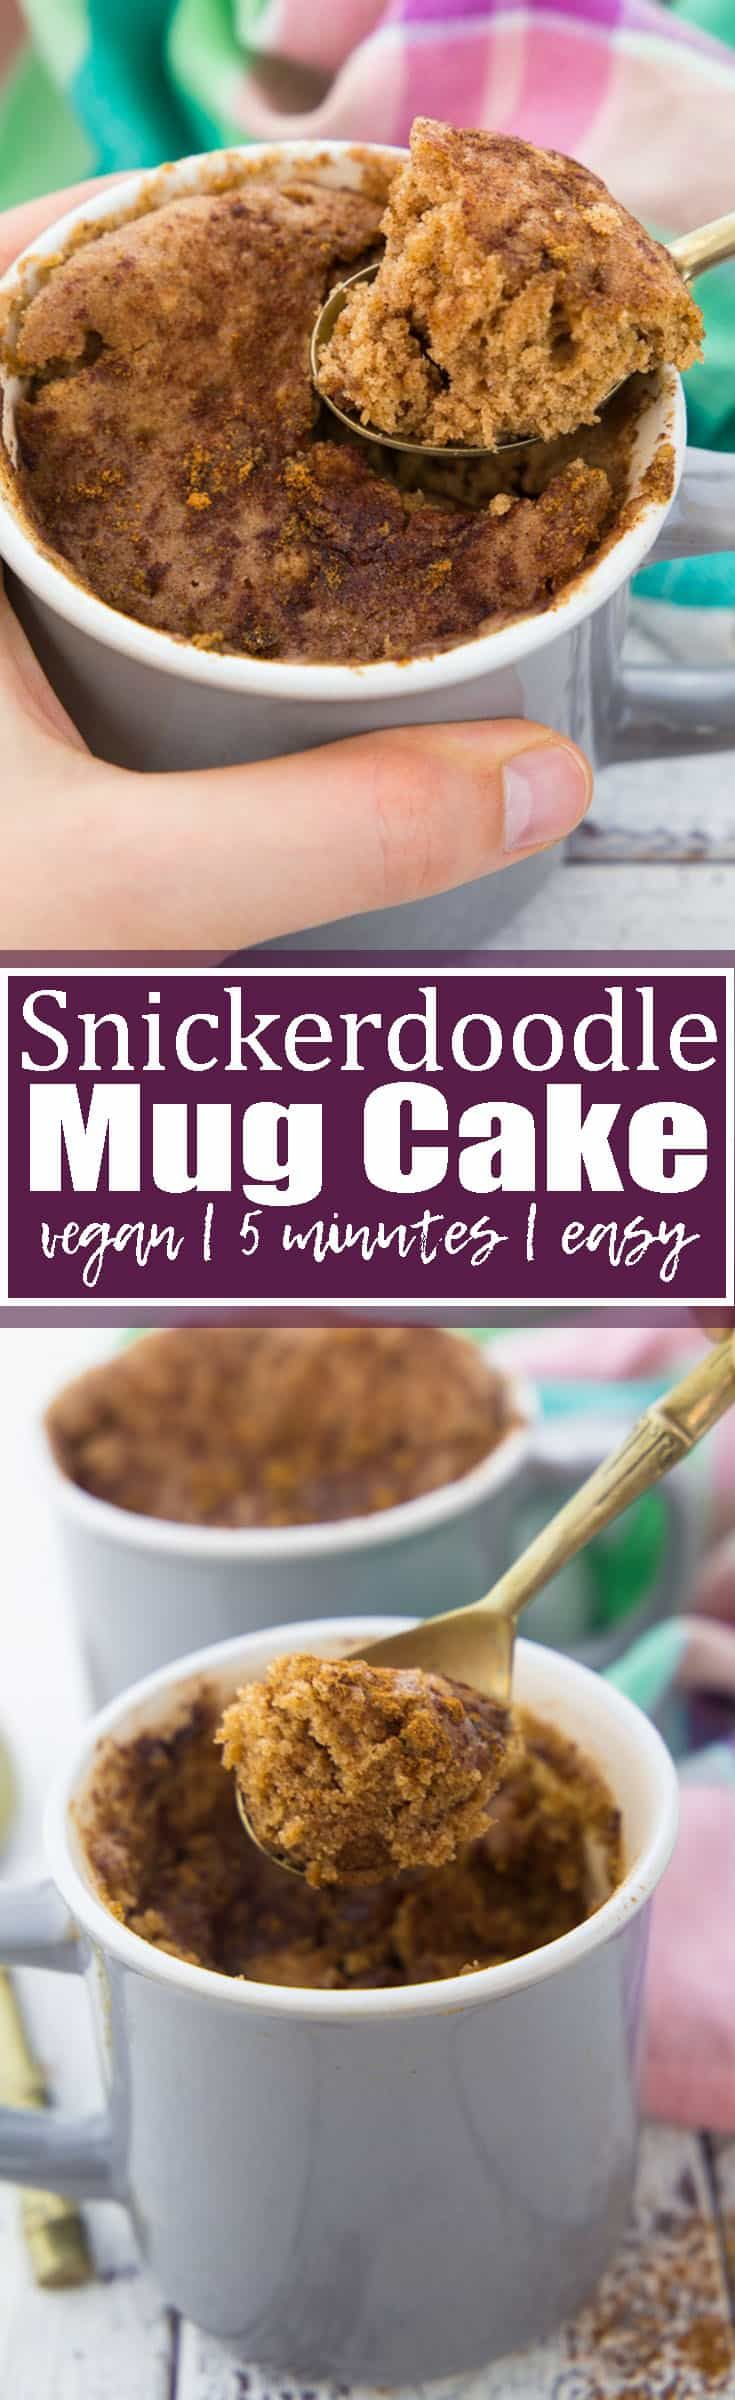 This vegan mug cake is absolutely perfect when you feel like having a cake for dessert but don't have enough time for baking! And the best thing is that it's a snickerdoodle mug cake!! 5 minutes is all you need for this easy individual-size dessert! Vegan desserts at their best!